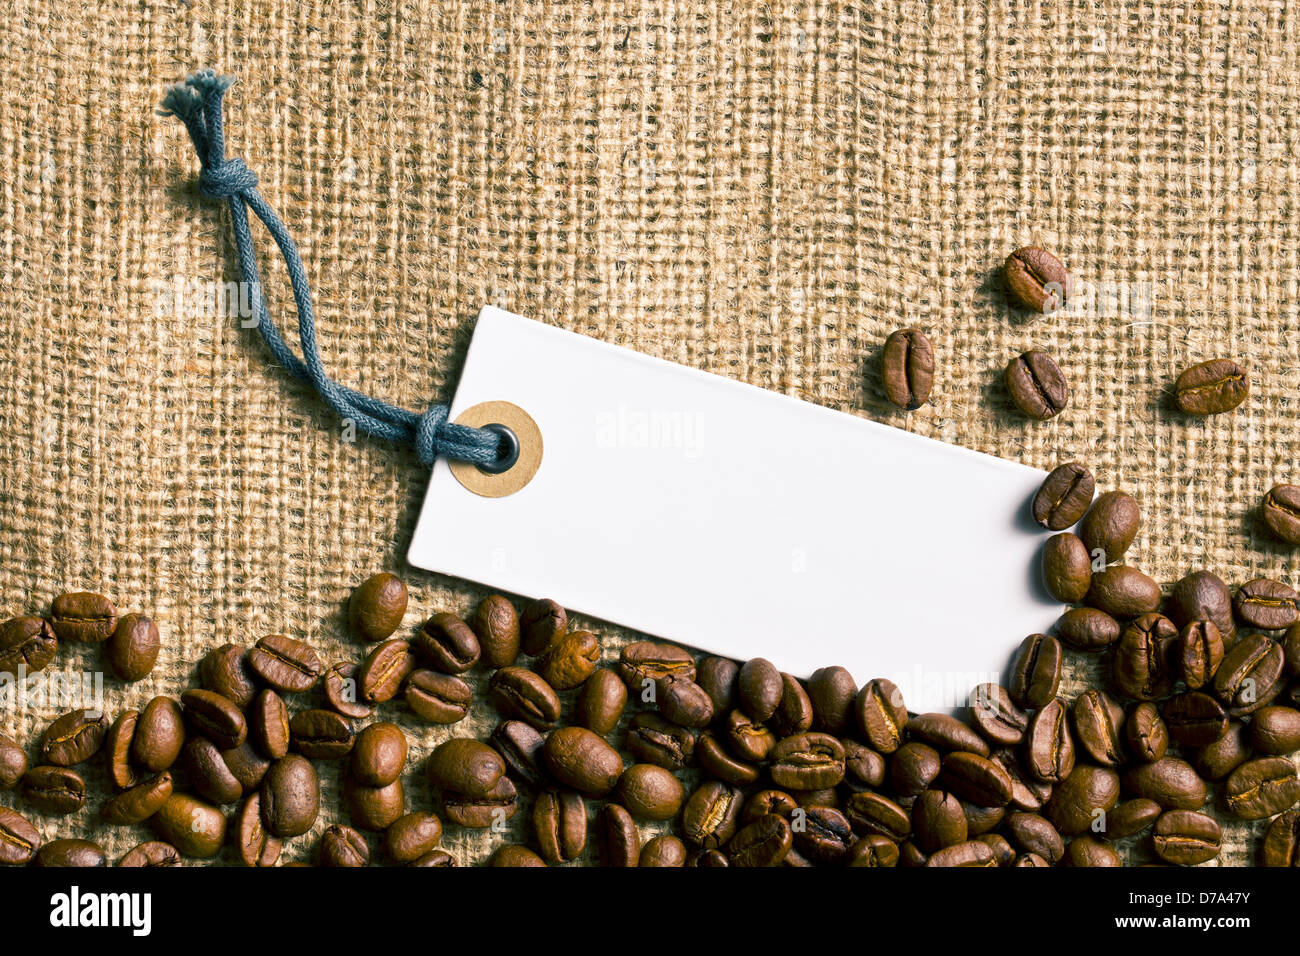 coffee beans and price tag on burlap - Stock Image